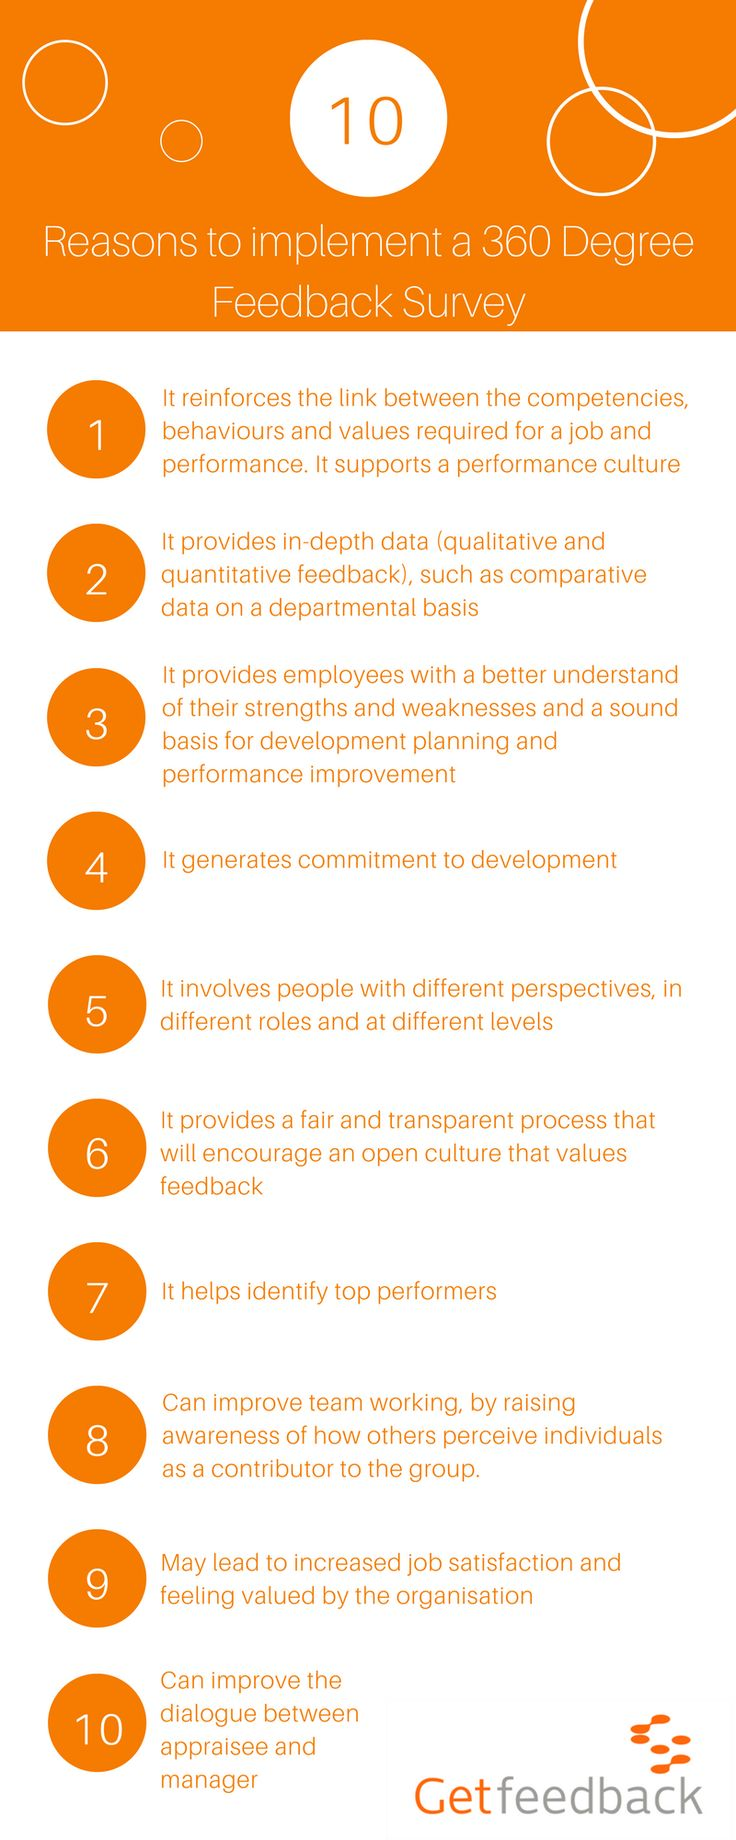 The top 10 reasons to implement a 360 degree feedback survey